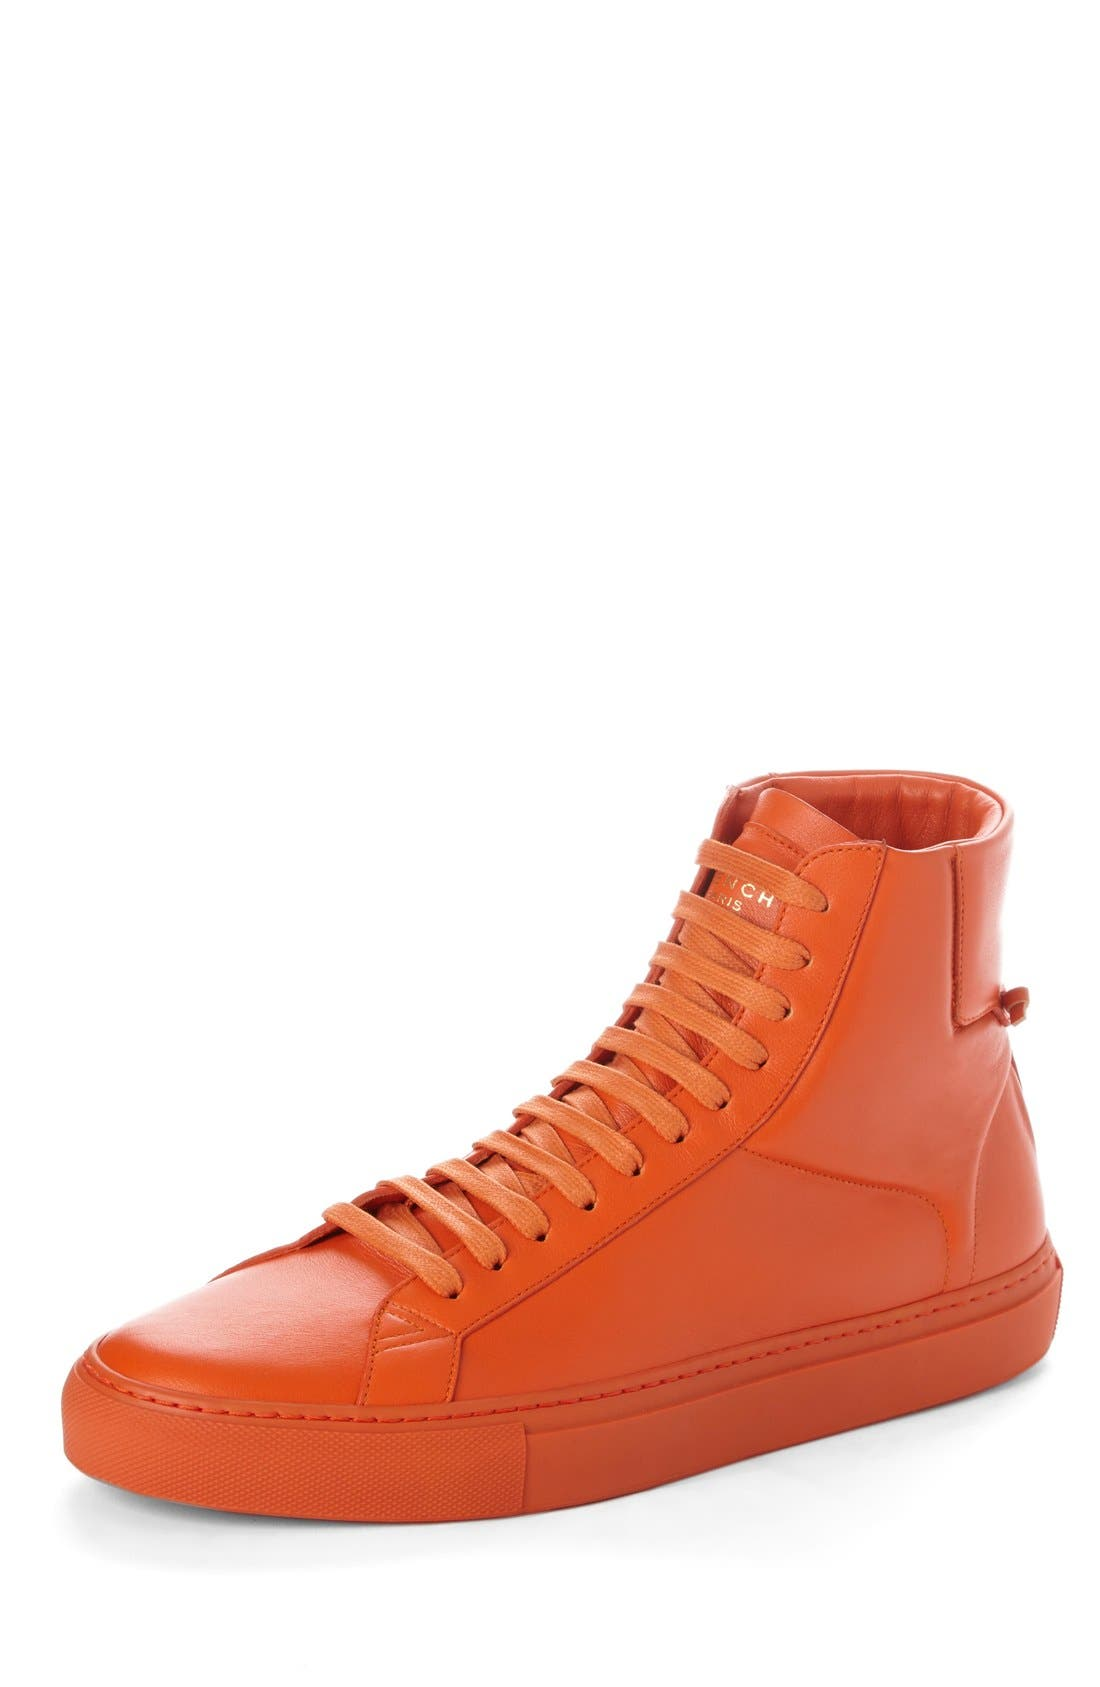 'Urban Knots' High Top Sneaker,                         Main,                         color, Orange Leather